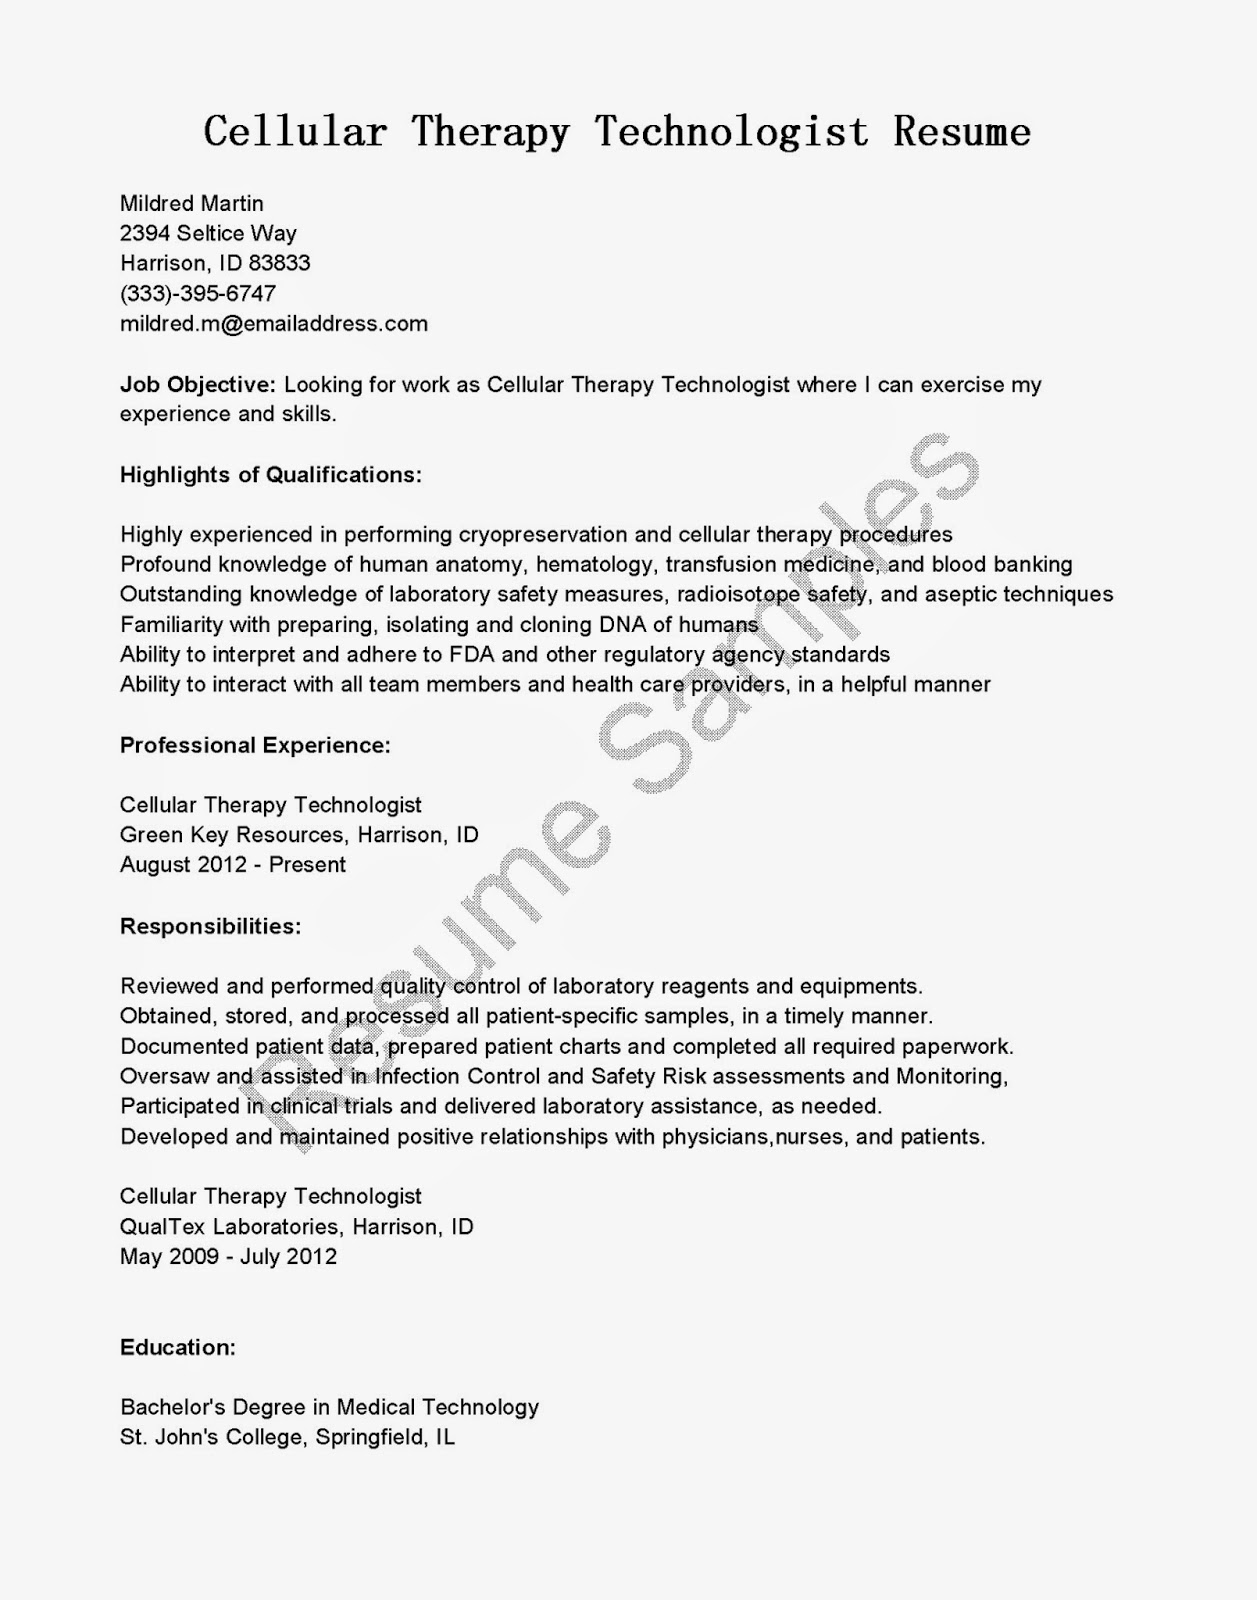 resume samples  cellular therapy technologist resume sample